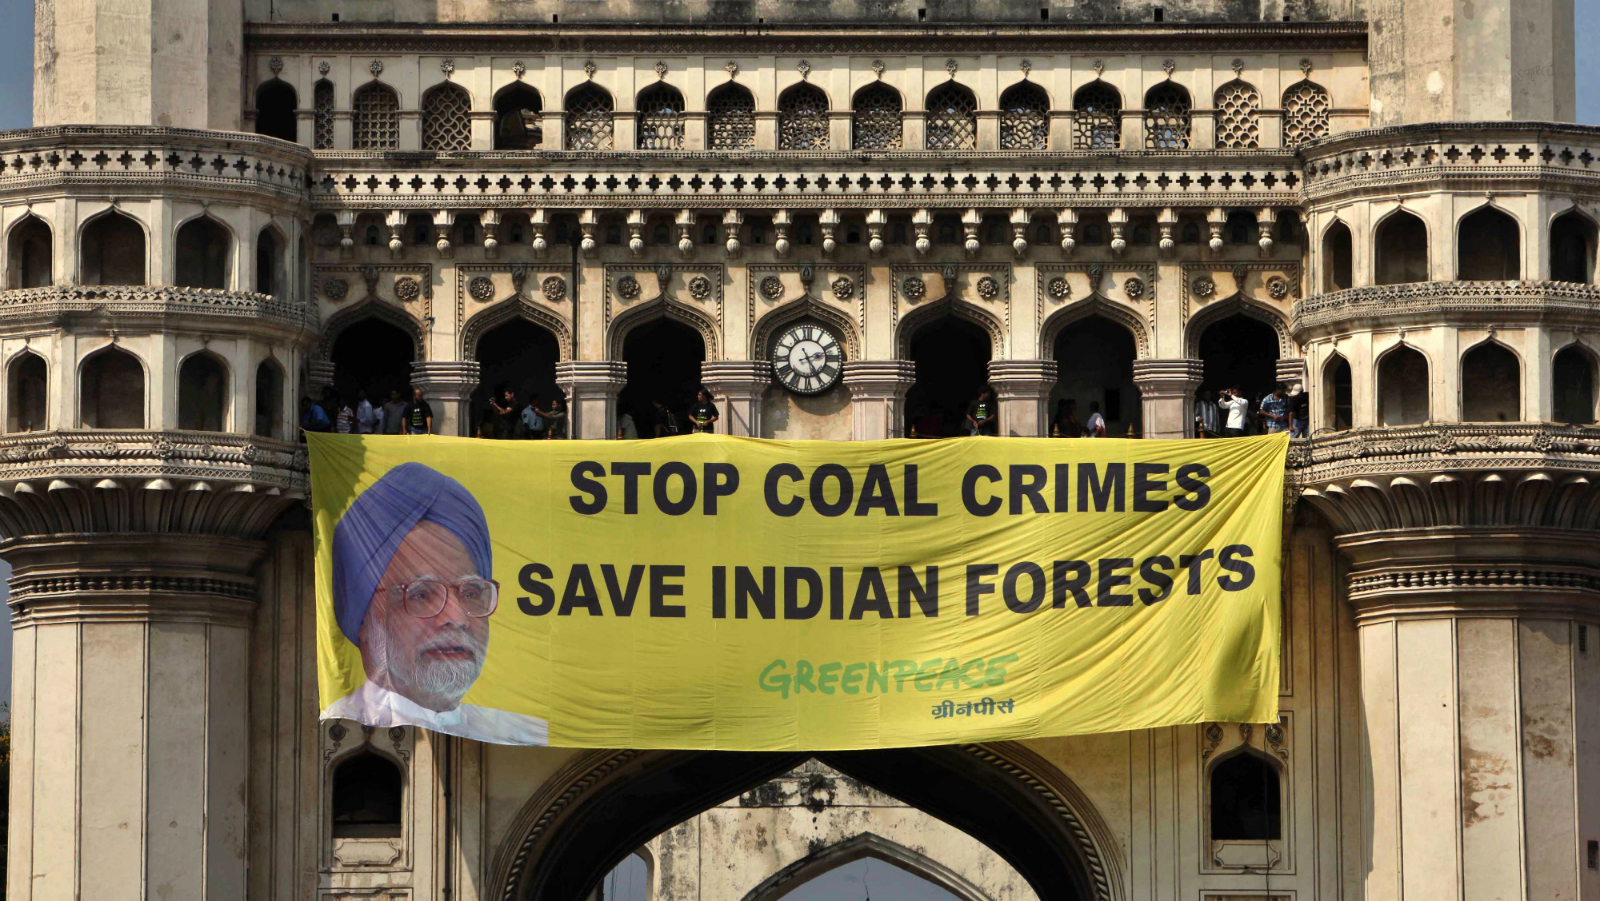 Greenpeace activists hang a banner with a photo of Indian Prime Minister Manmohan Singh atop the Charminar monument in Hyderabad, India, Monday, Oct. 8, 2012. The activists were protesting against India hosting the U.N. summit on biodiversity even as Indian forests are being destroyed due to coal mining. Singh's government was recently accused of irregular sales of coal blocks that India's auditor said cost the country's treasury tens of billions.